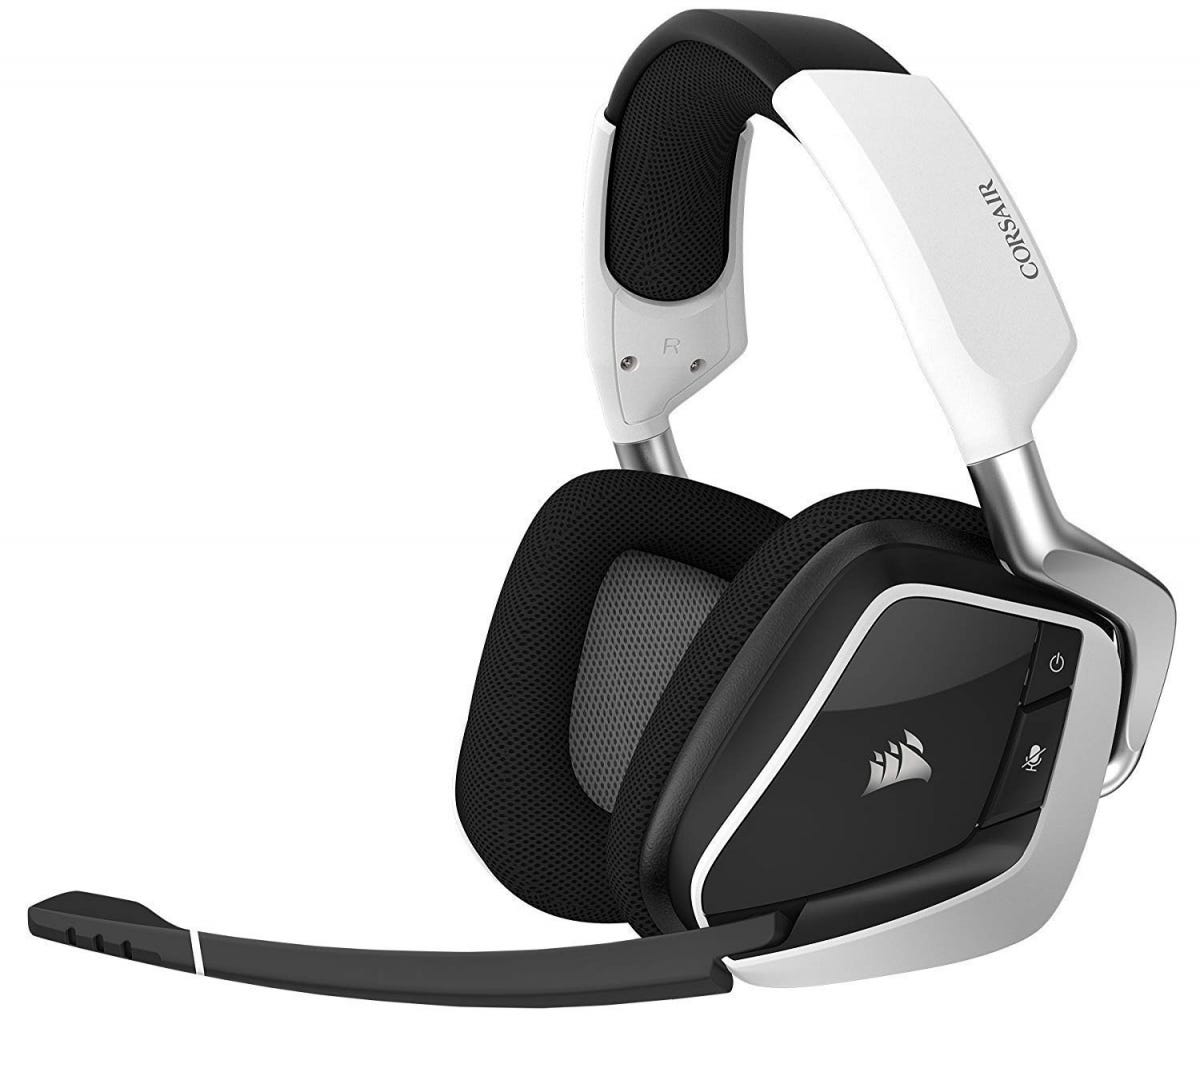 This wireless headset works great for communicating with your team.